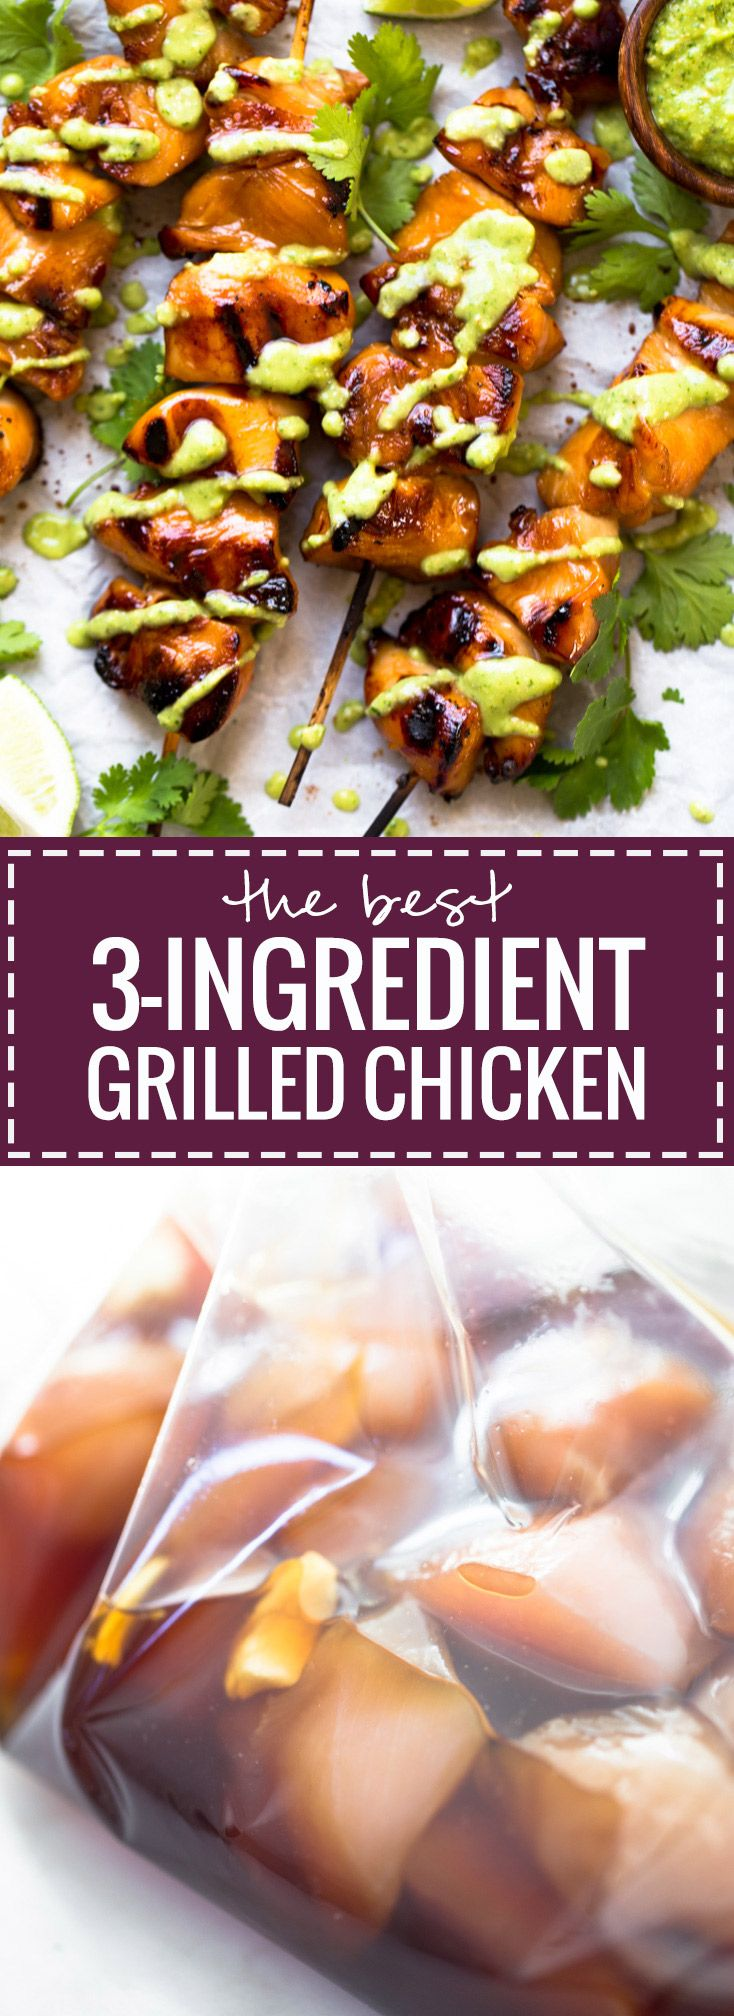 3 Ingredient Grilled Chicken recipe - with soy sauce, honey, and garlic. So easy and super adaptable! 200 calories. | pinchofyum.com